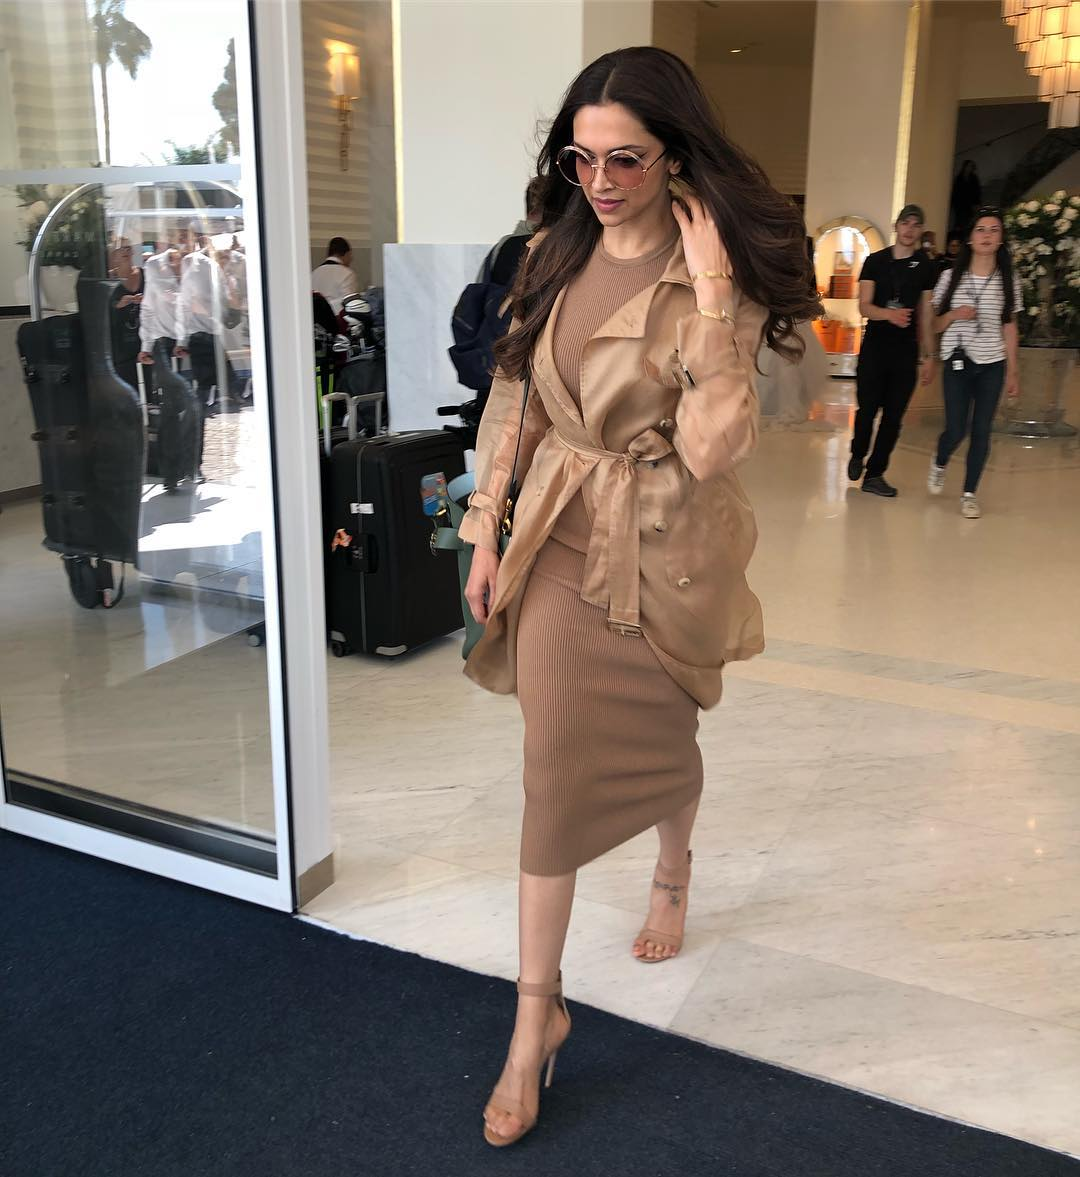 4 dresses - deepika padukone tan brown bodycon cannes